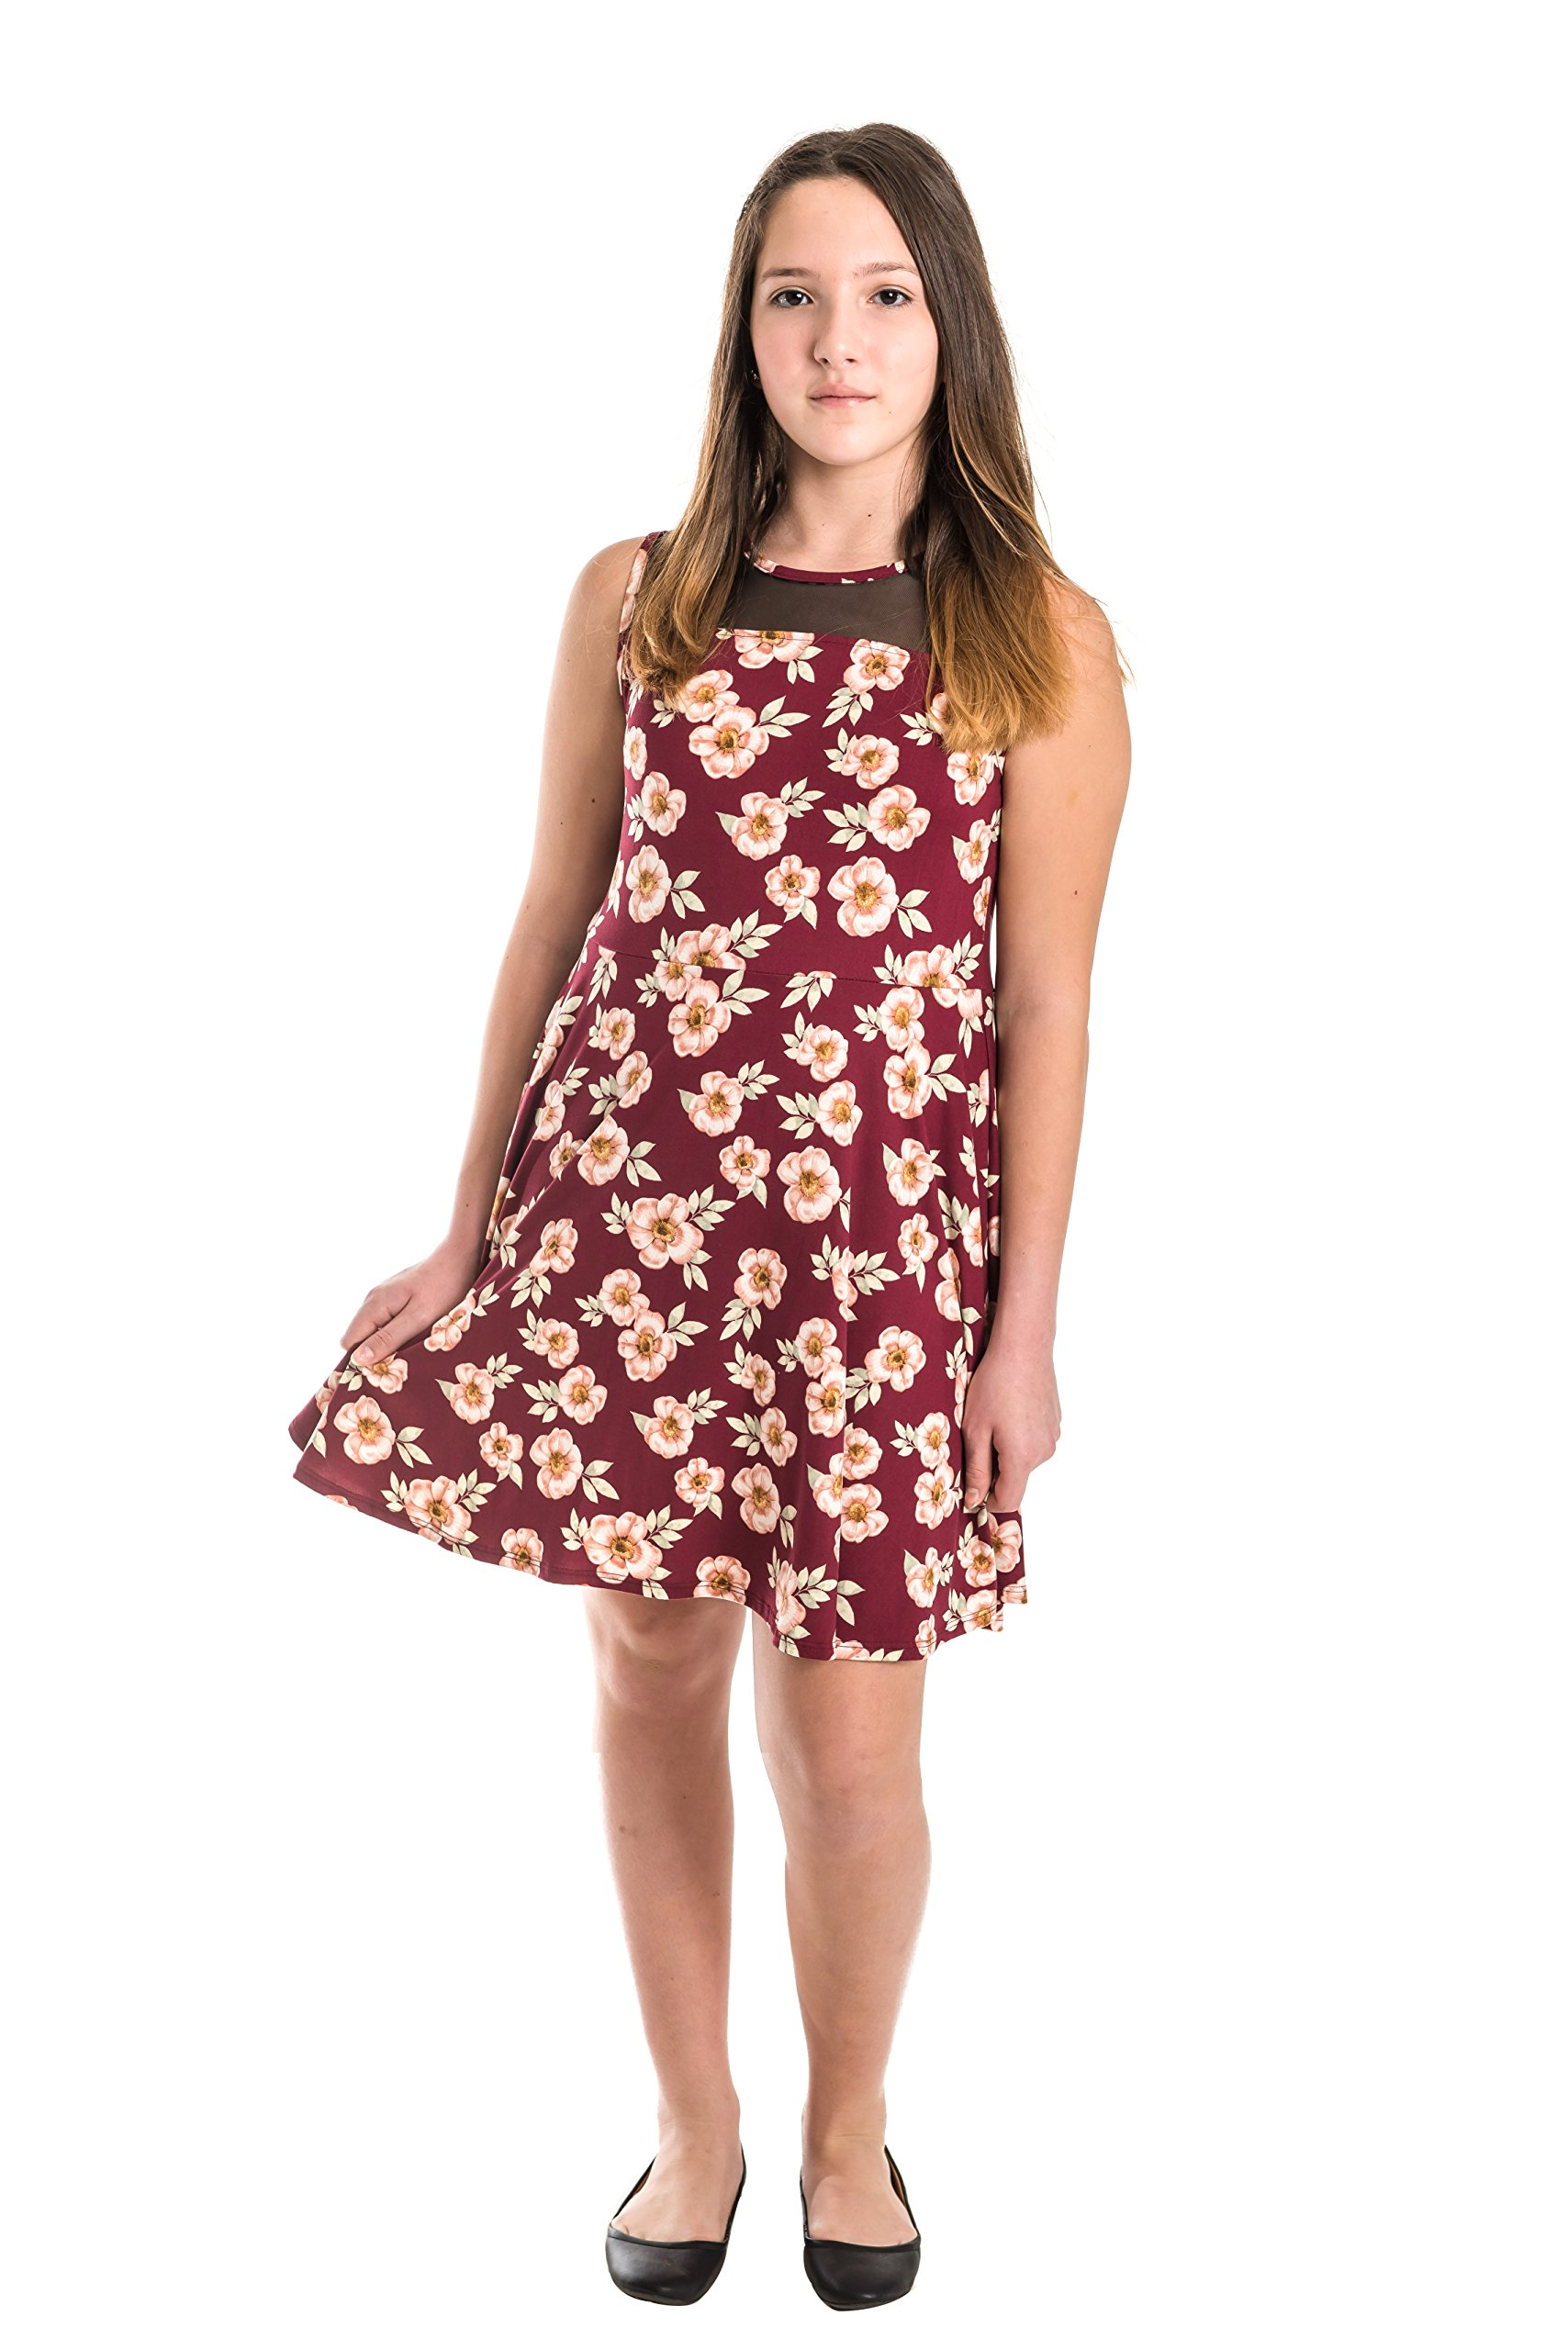 Smile You Are Beautiful Girls Kids Full Size Brushed Floral Print Mesh Insert Sleeveless Skater Dress Berry Size 10.5